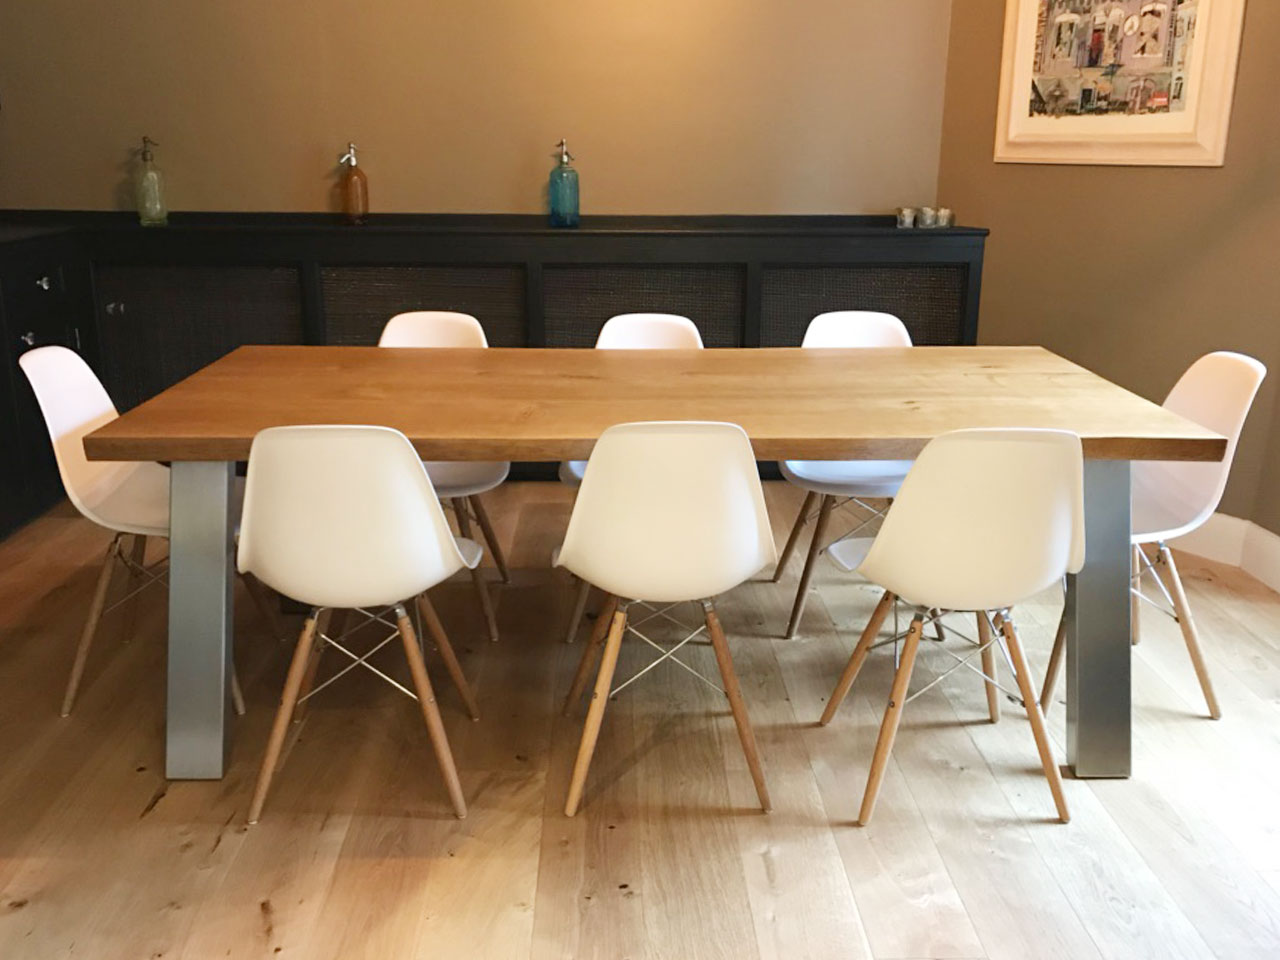 Bespoke Oak Table by Abacus Tables